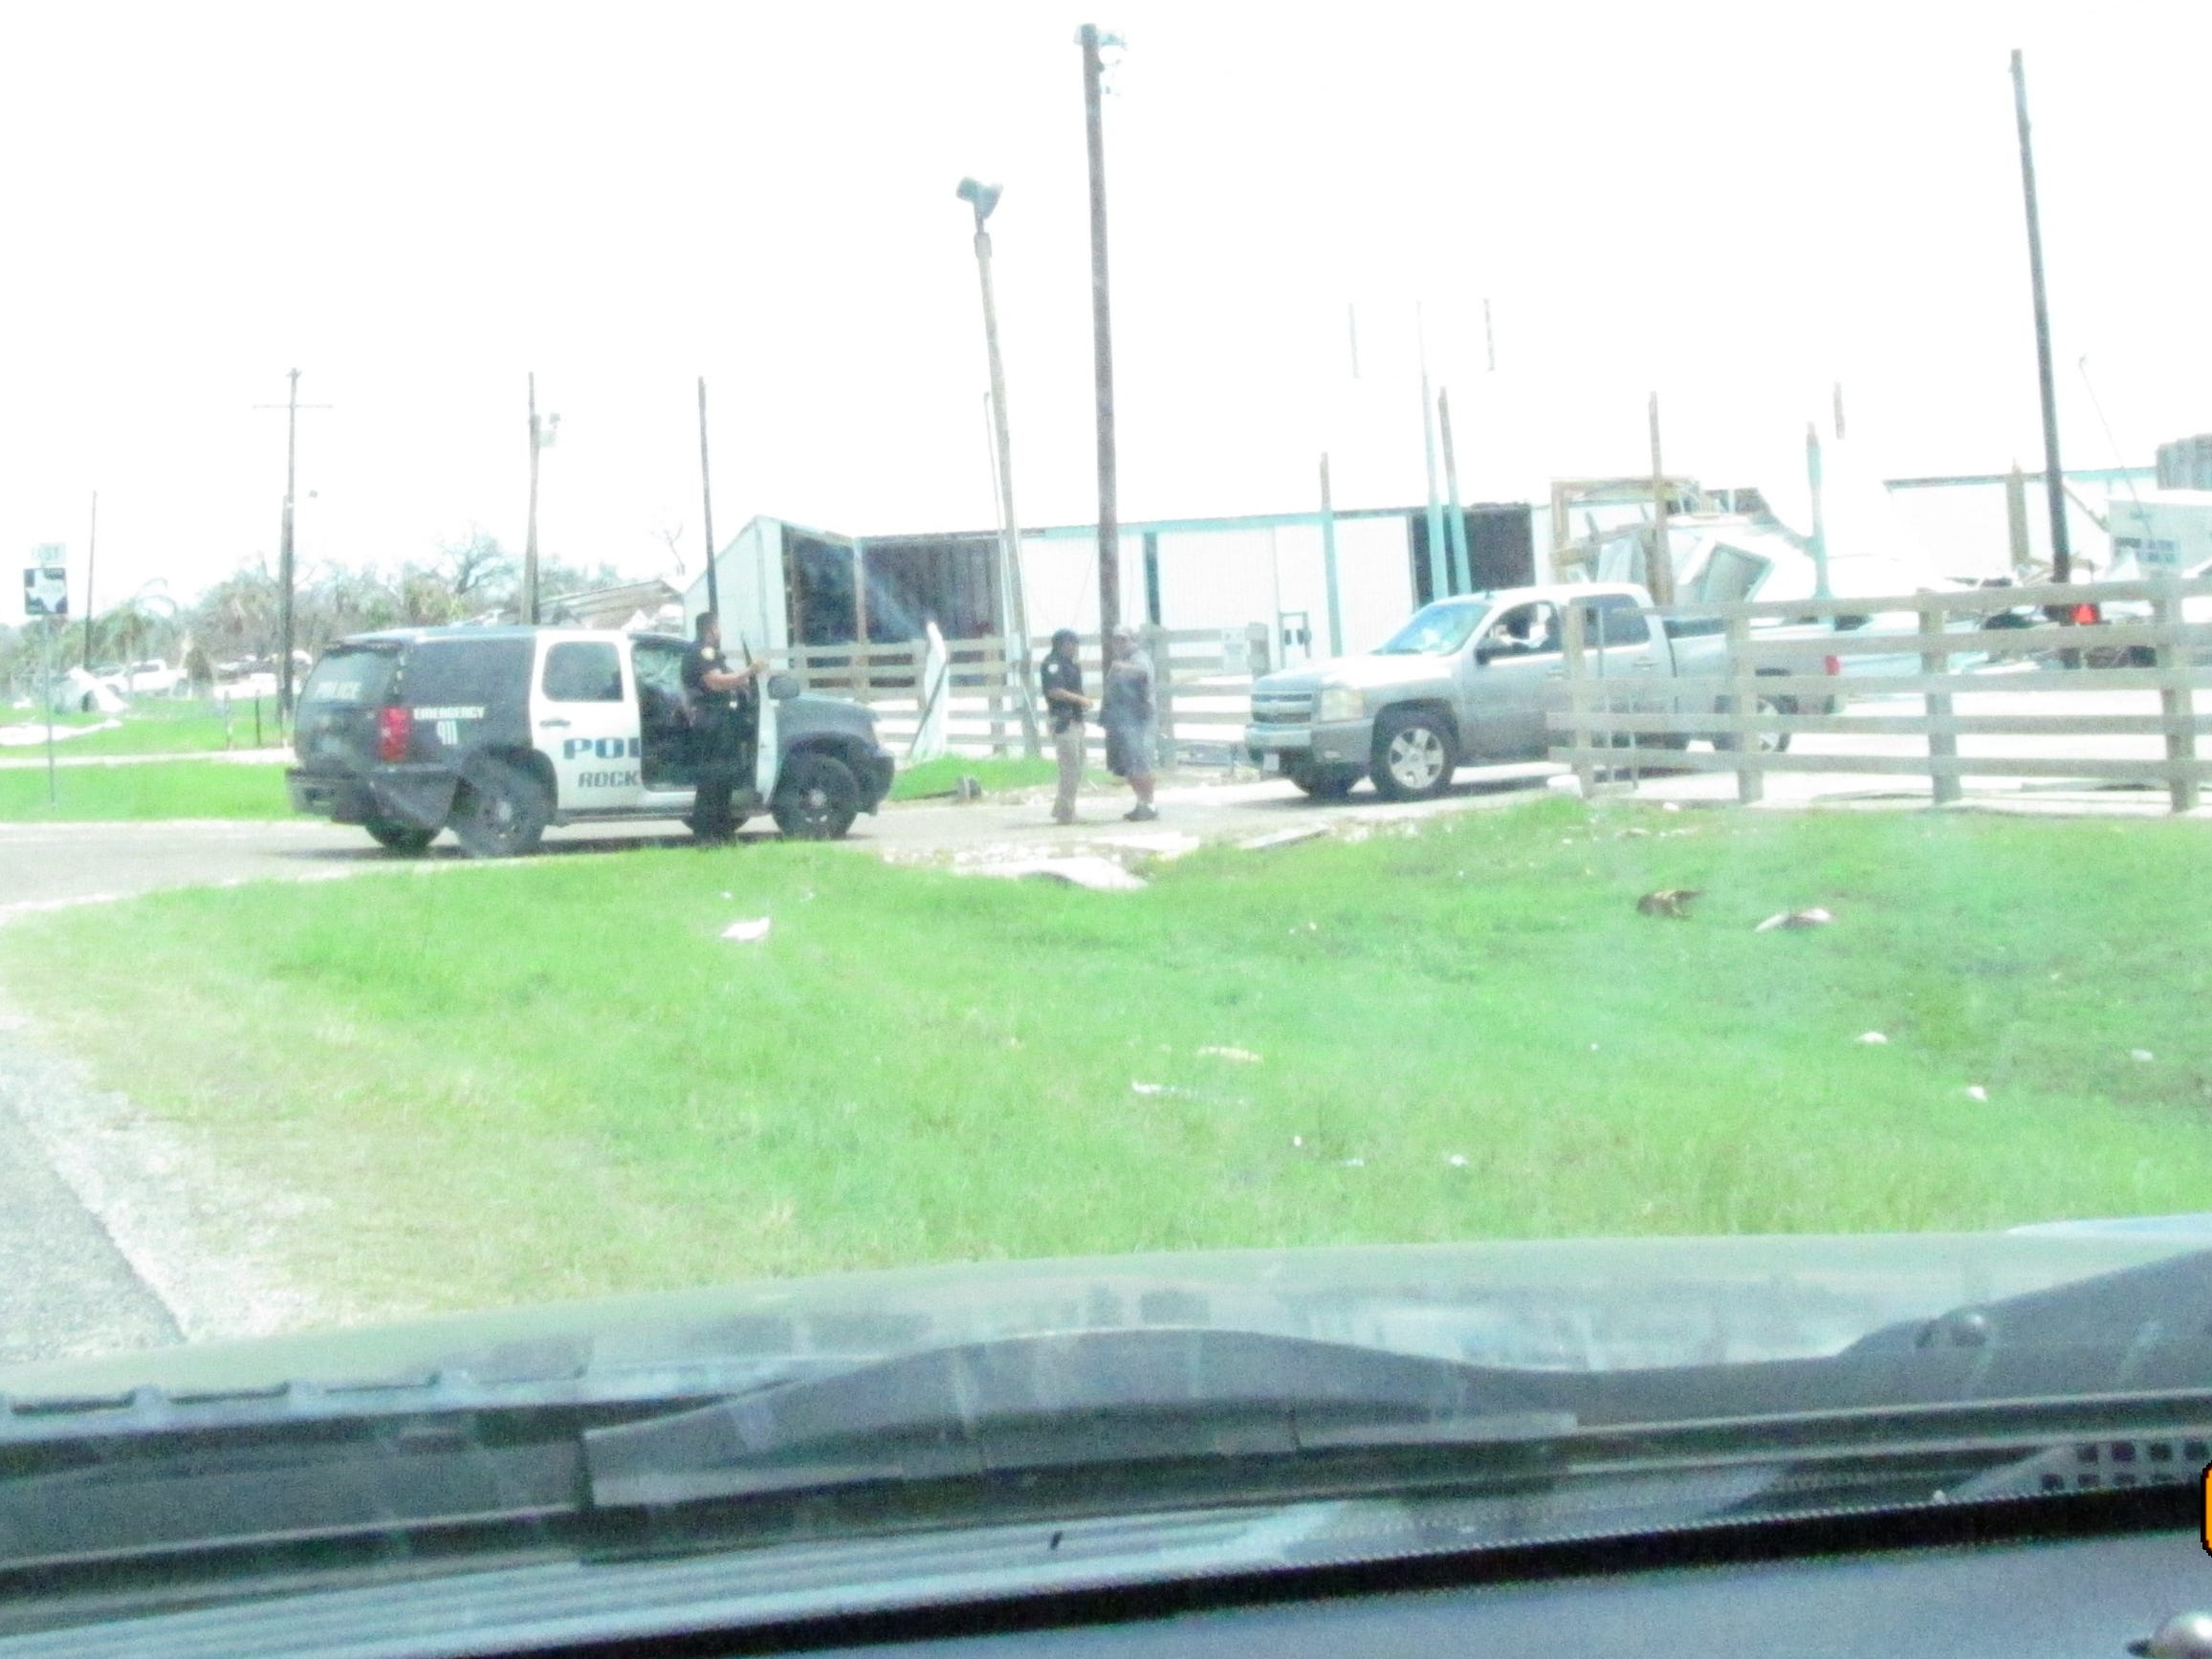 Corpus Christi Police Department Gang Unit officers helped Rockport police officers respond to calls and patrol the city after Hurricane Harvey devastated the area.